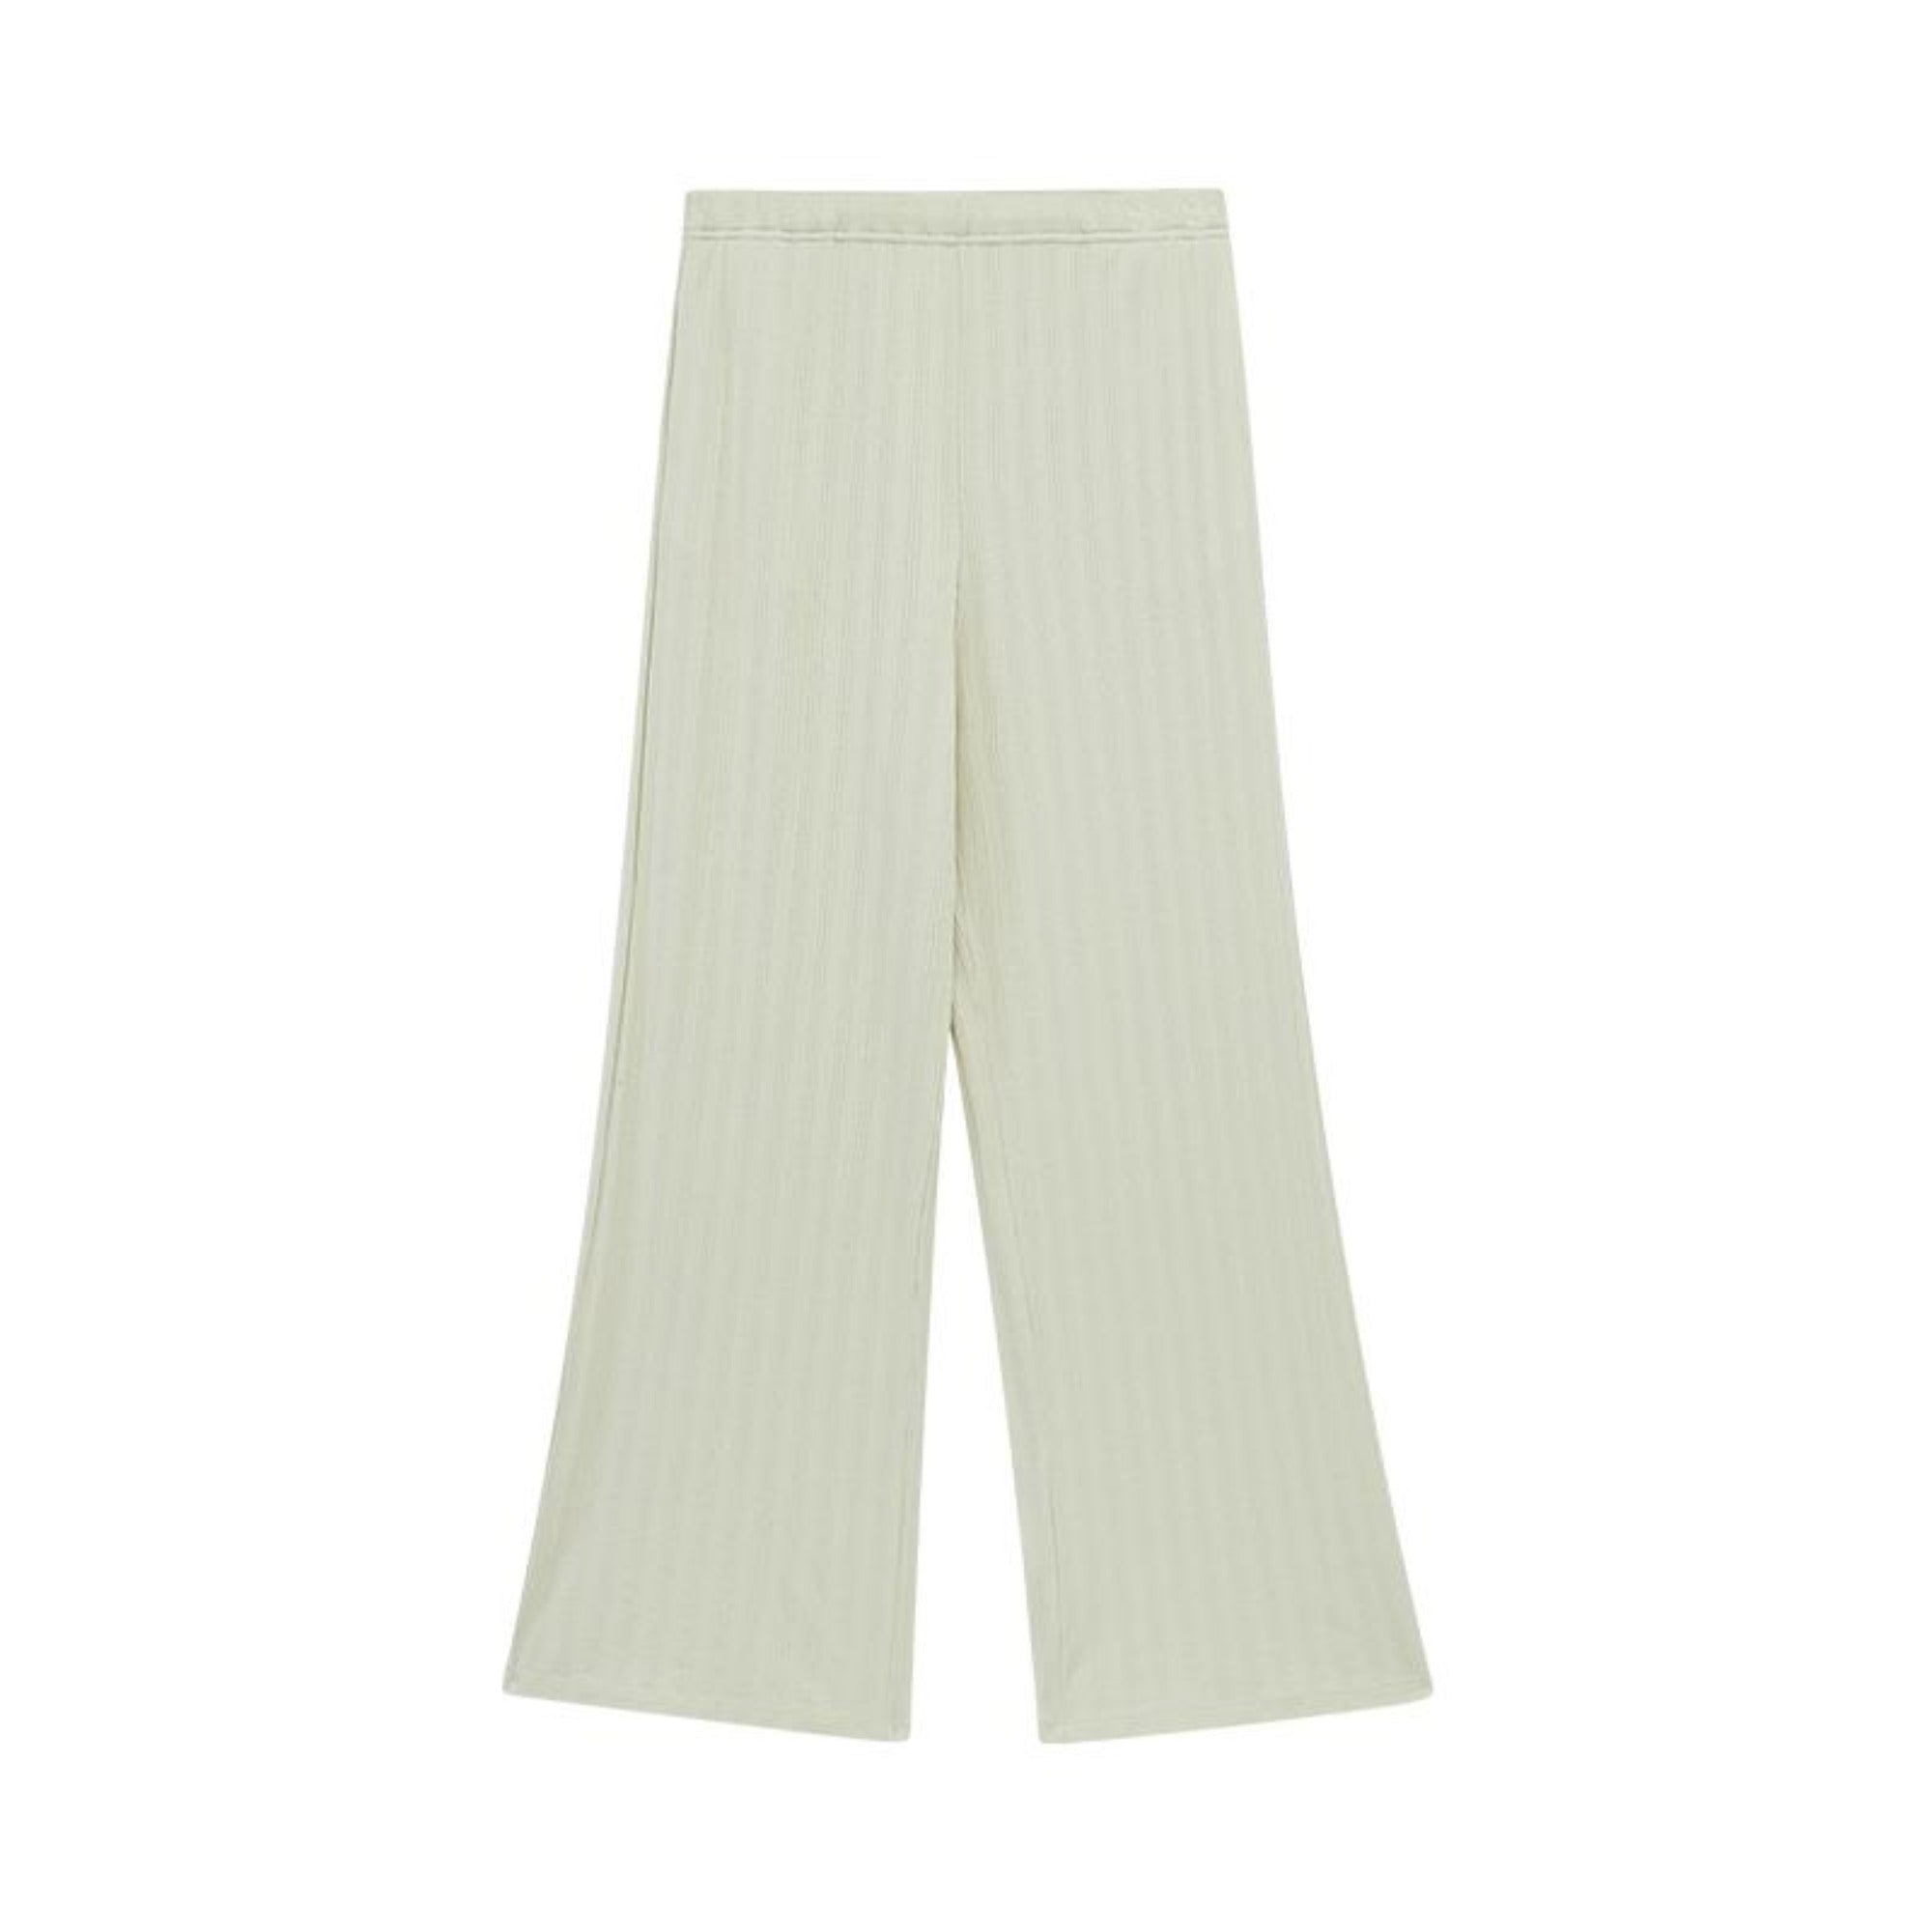 NEIWAI's Laid Back Ribbed Lounge Pants in Mojito.